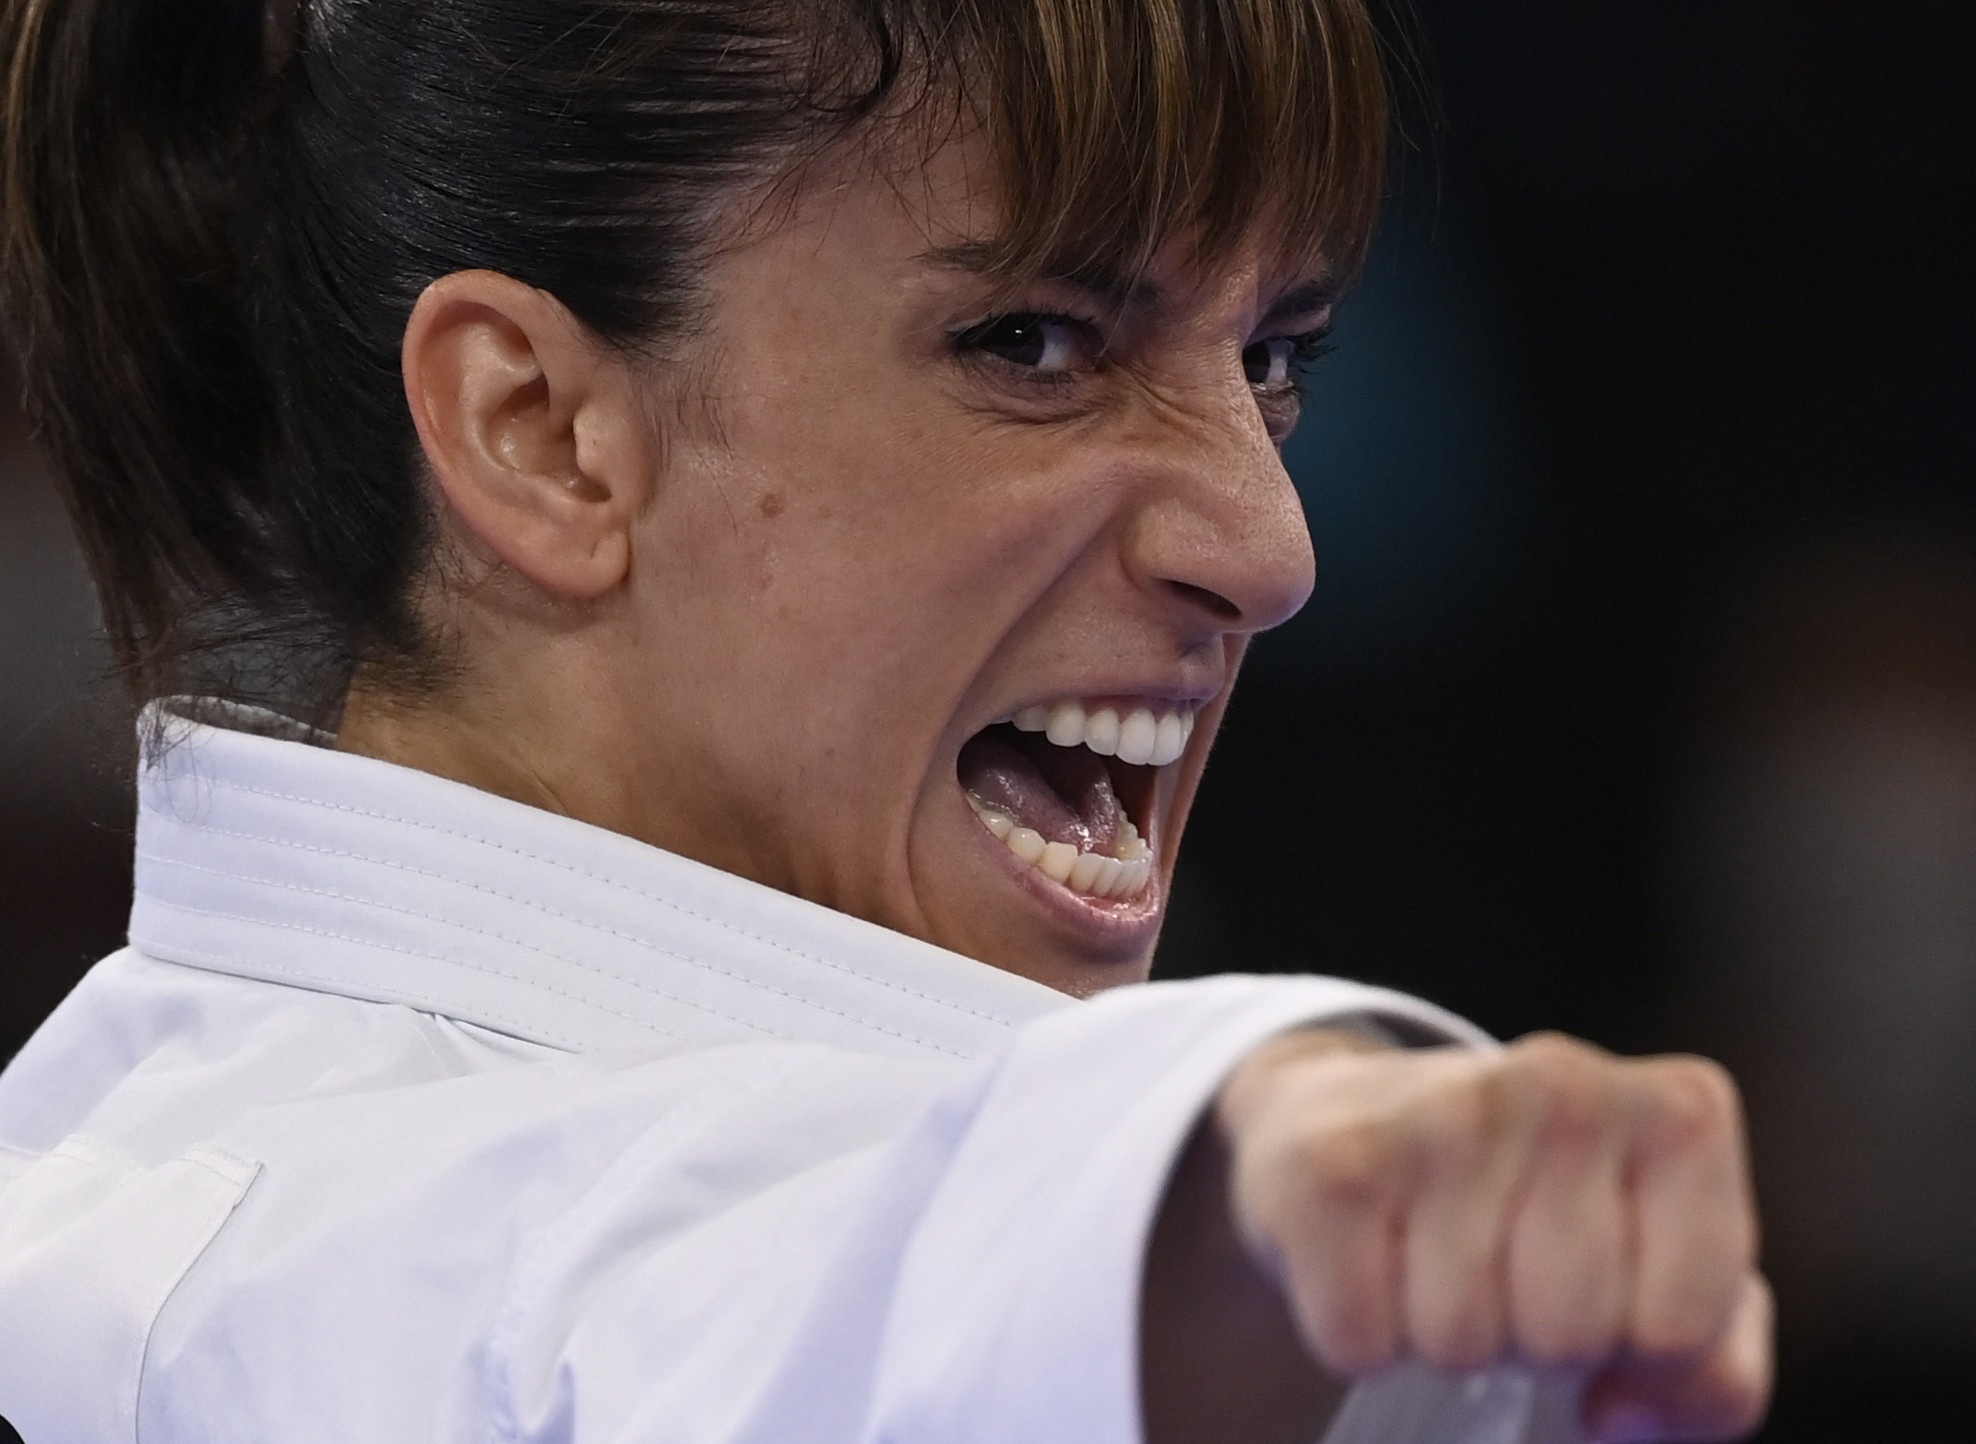 Sandra Sánchez was crowned as the first Olympic champion in karate ©Getty Images